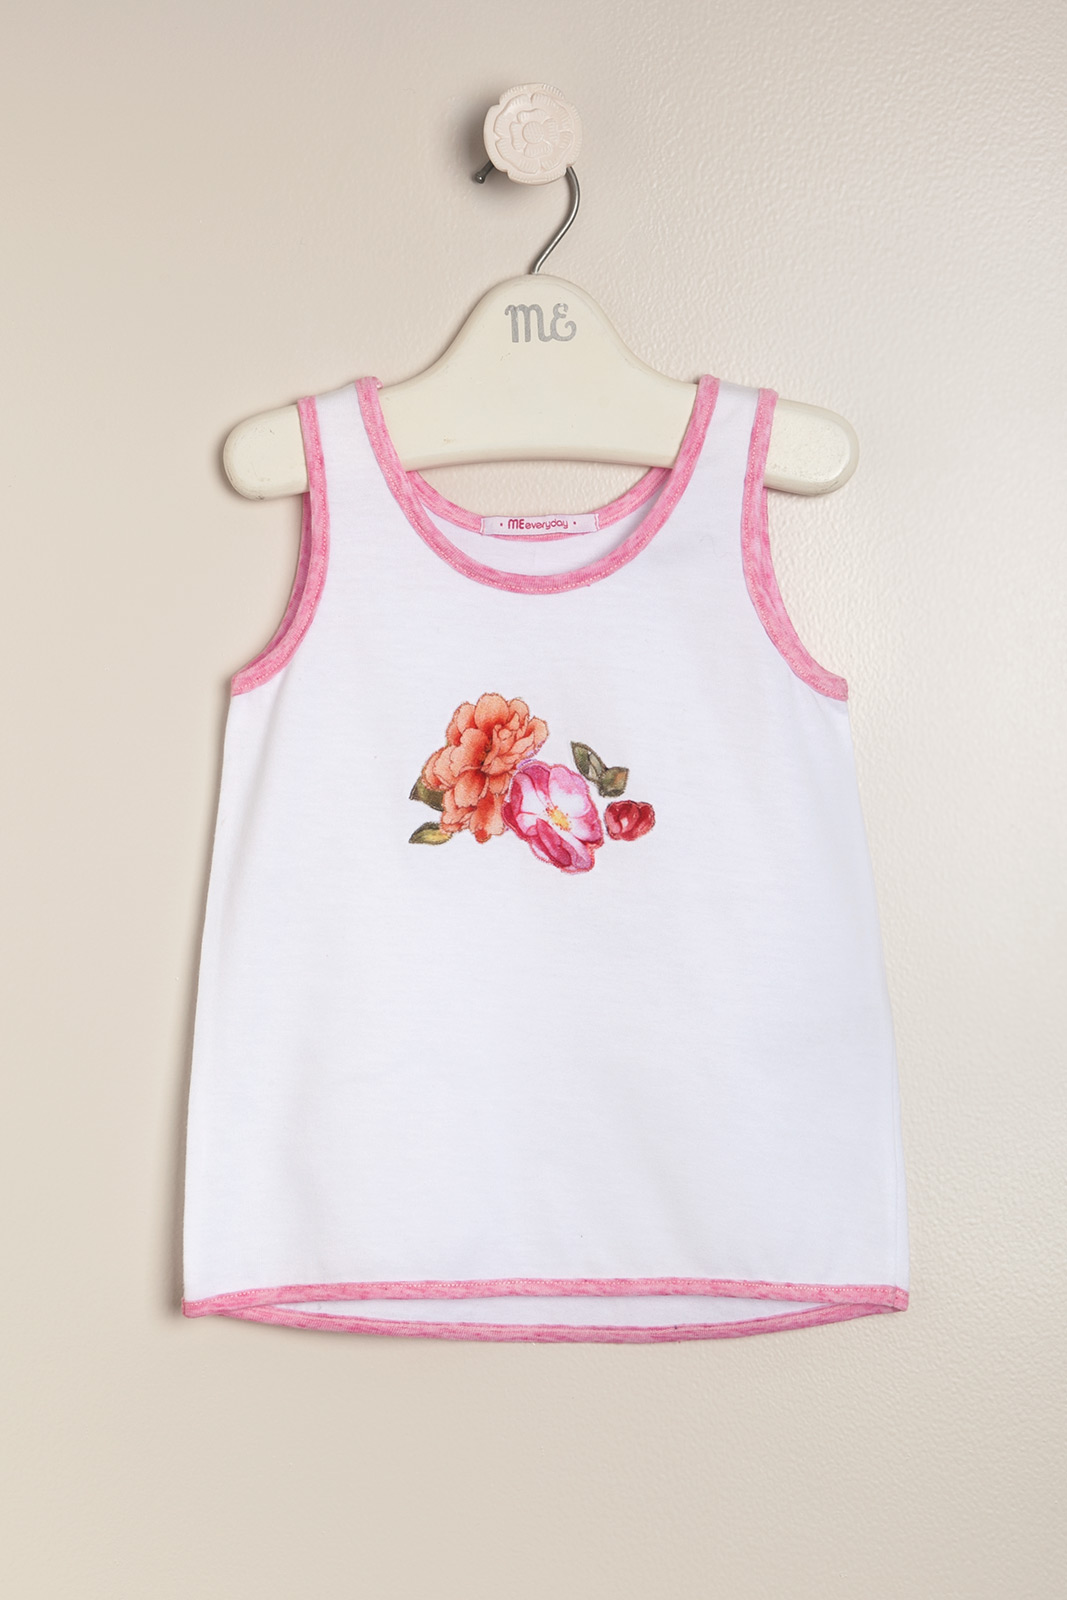 Musculosa con flores lulu